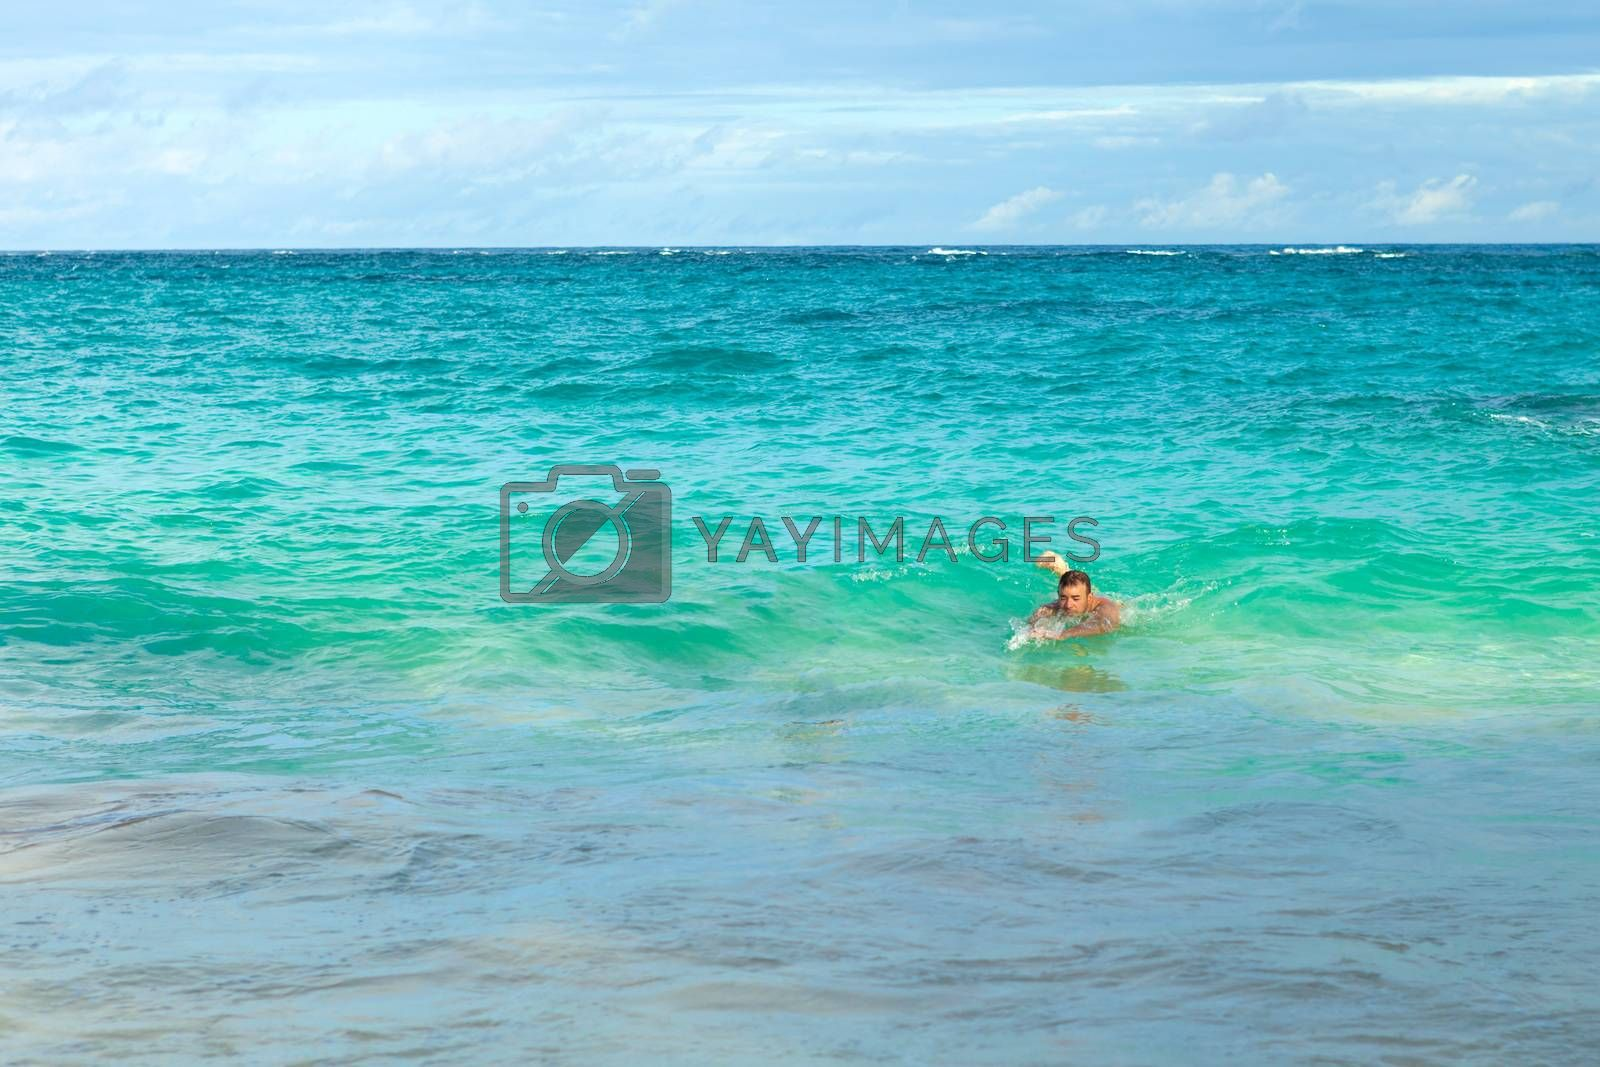 Man swimming alone in the waves body surfing at Bermudas John Smiths Bay beach.